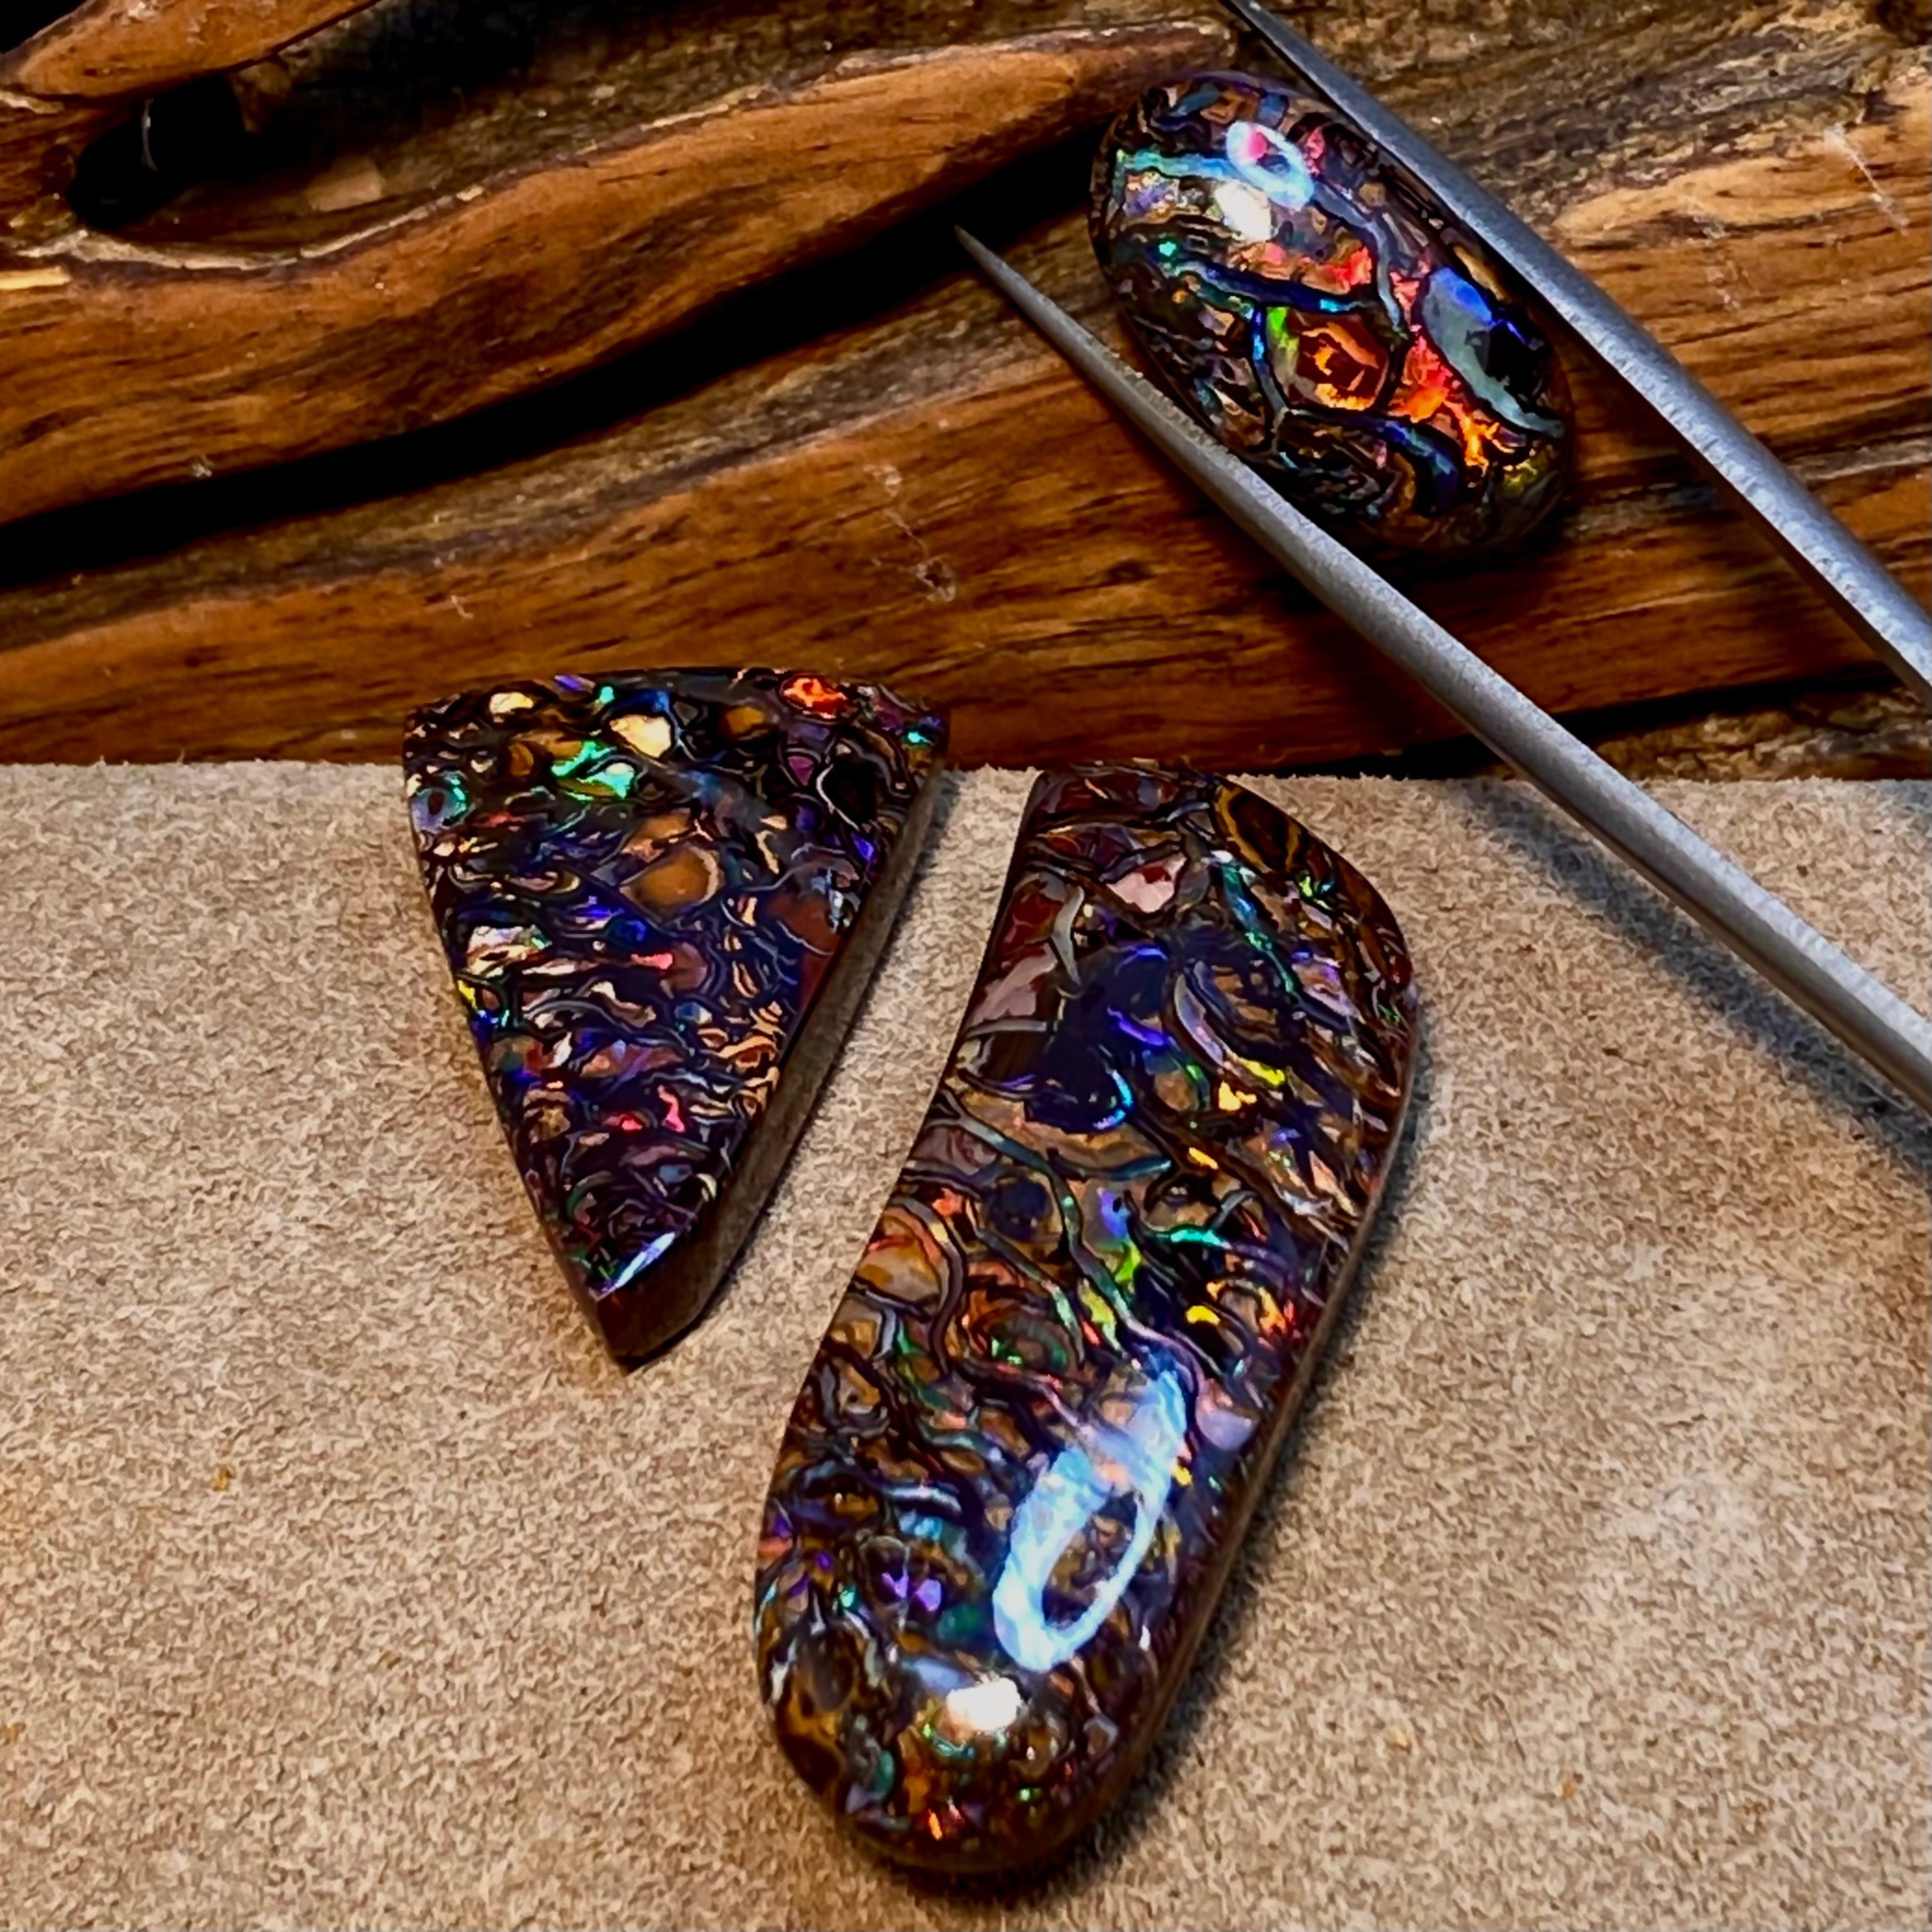 SOLD!!! 2 OF THESE 3 ARE NOT AVAILABLE Feature Opals From Discovery Channel